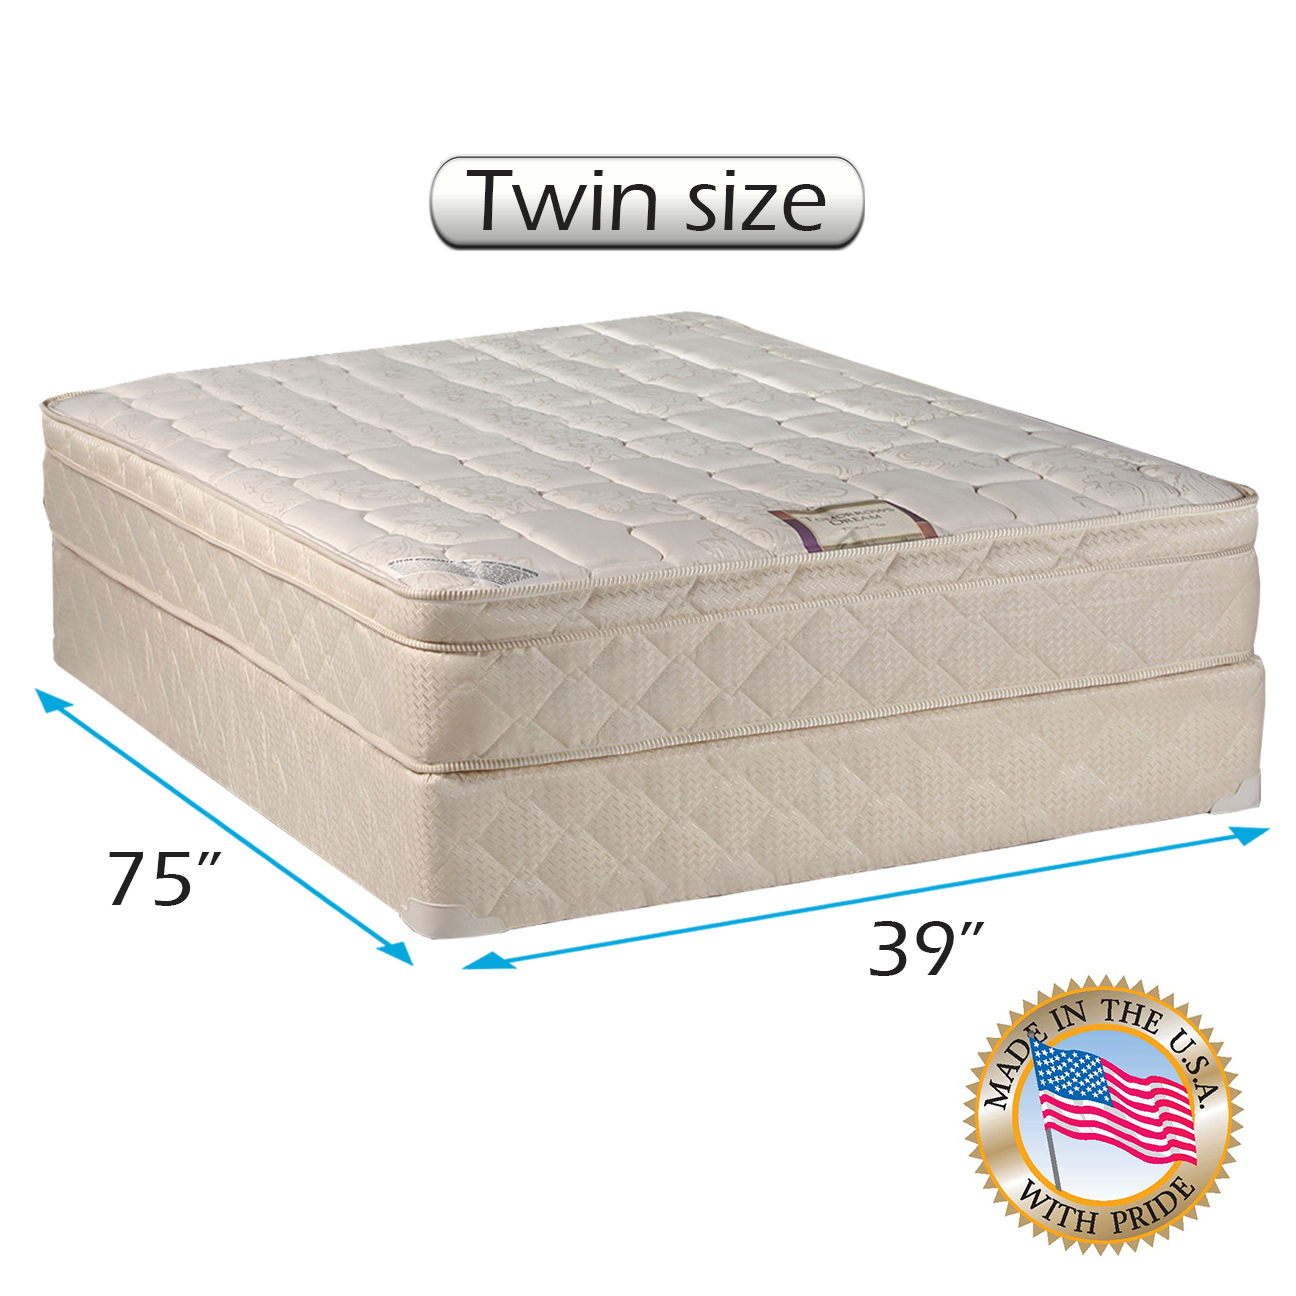 Dream World Inner Spring Pillowtop (Eurotop) Mattress set Bed Frame Included Twin Size - Medium Soft, Fully assembled, Orthopedic, Good for your back, Superior Quality by Dream Solutions USA